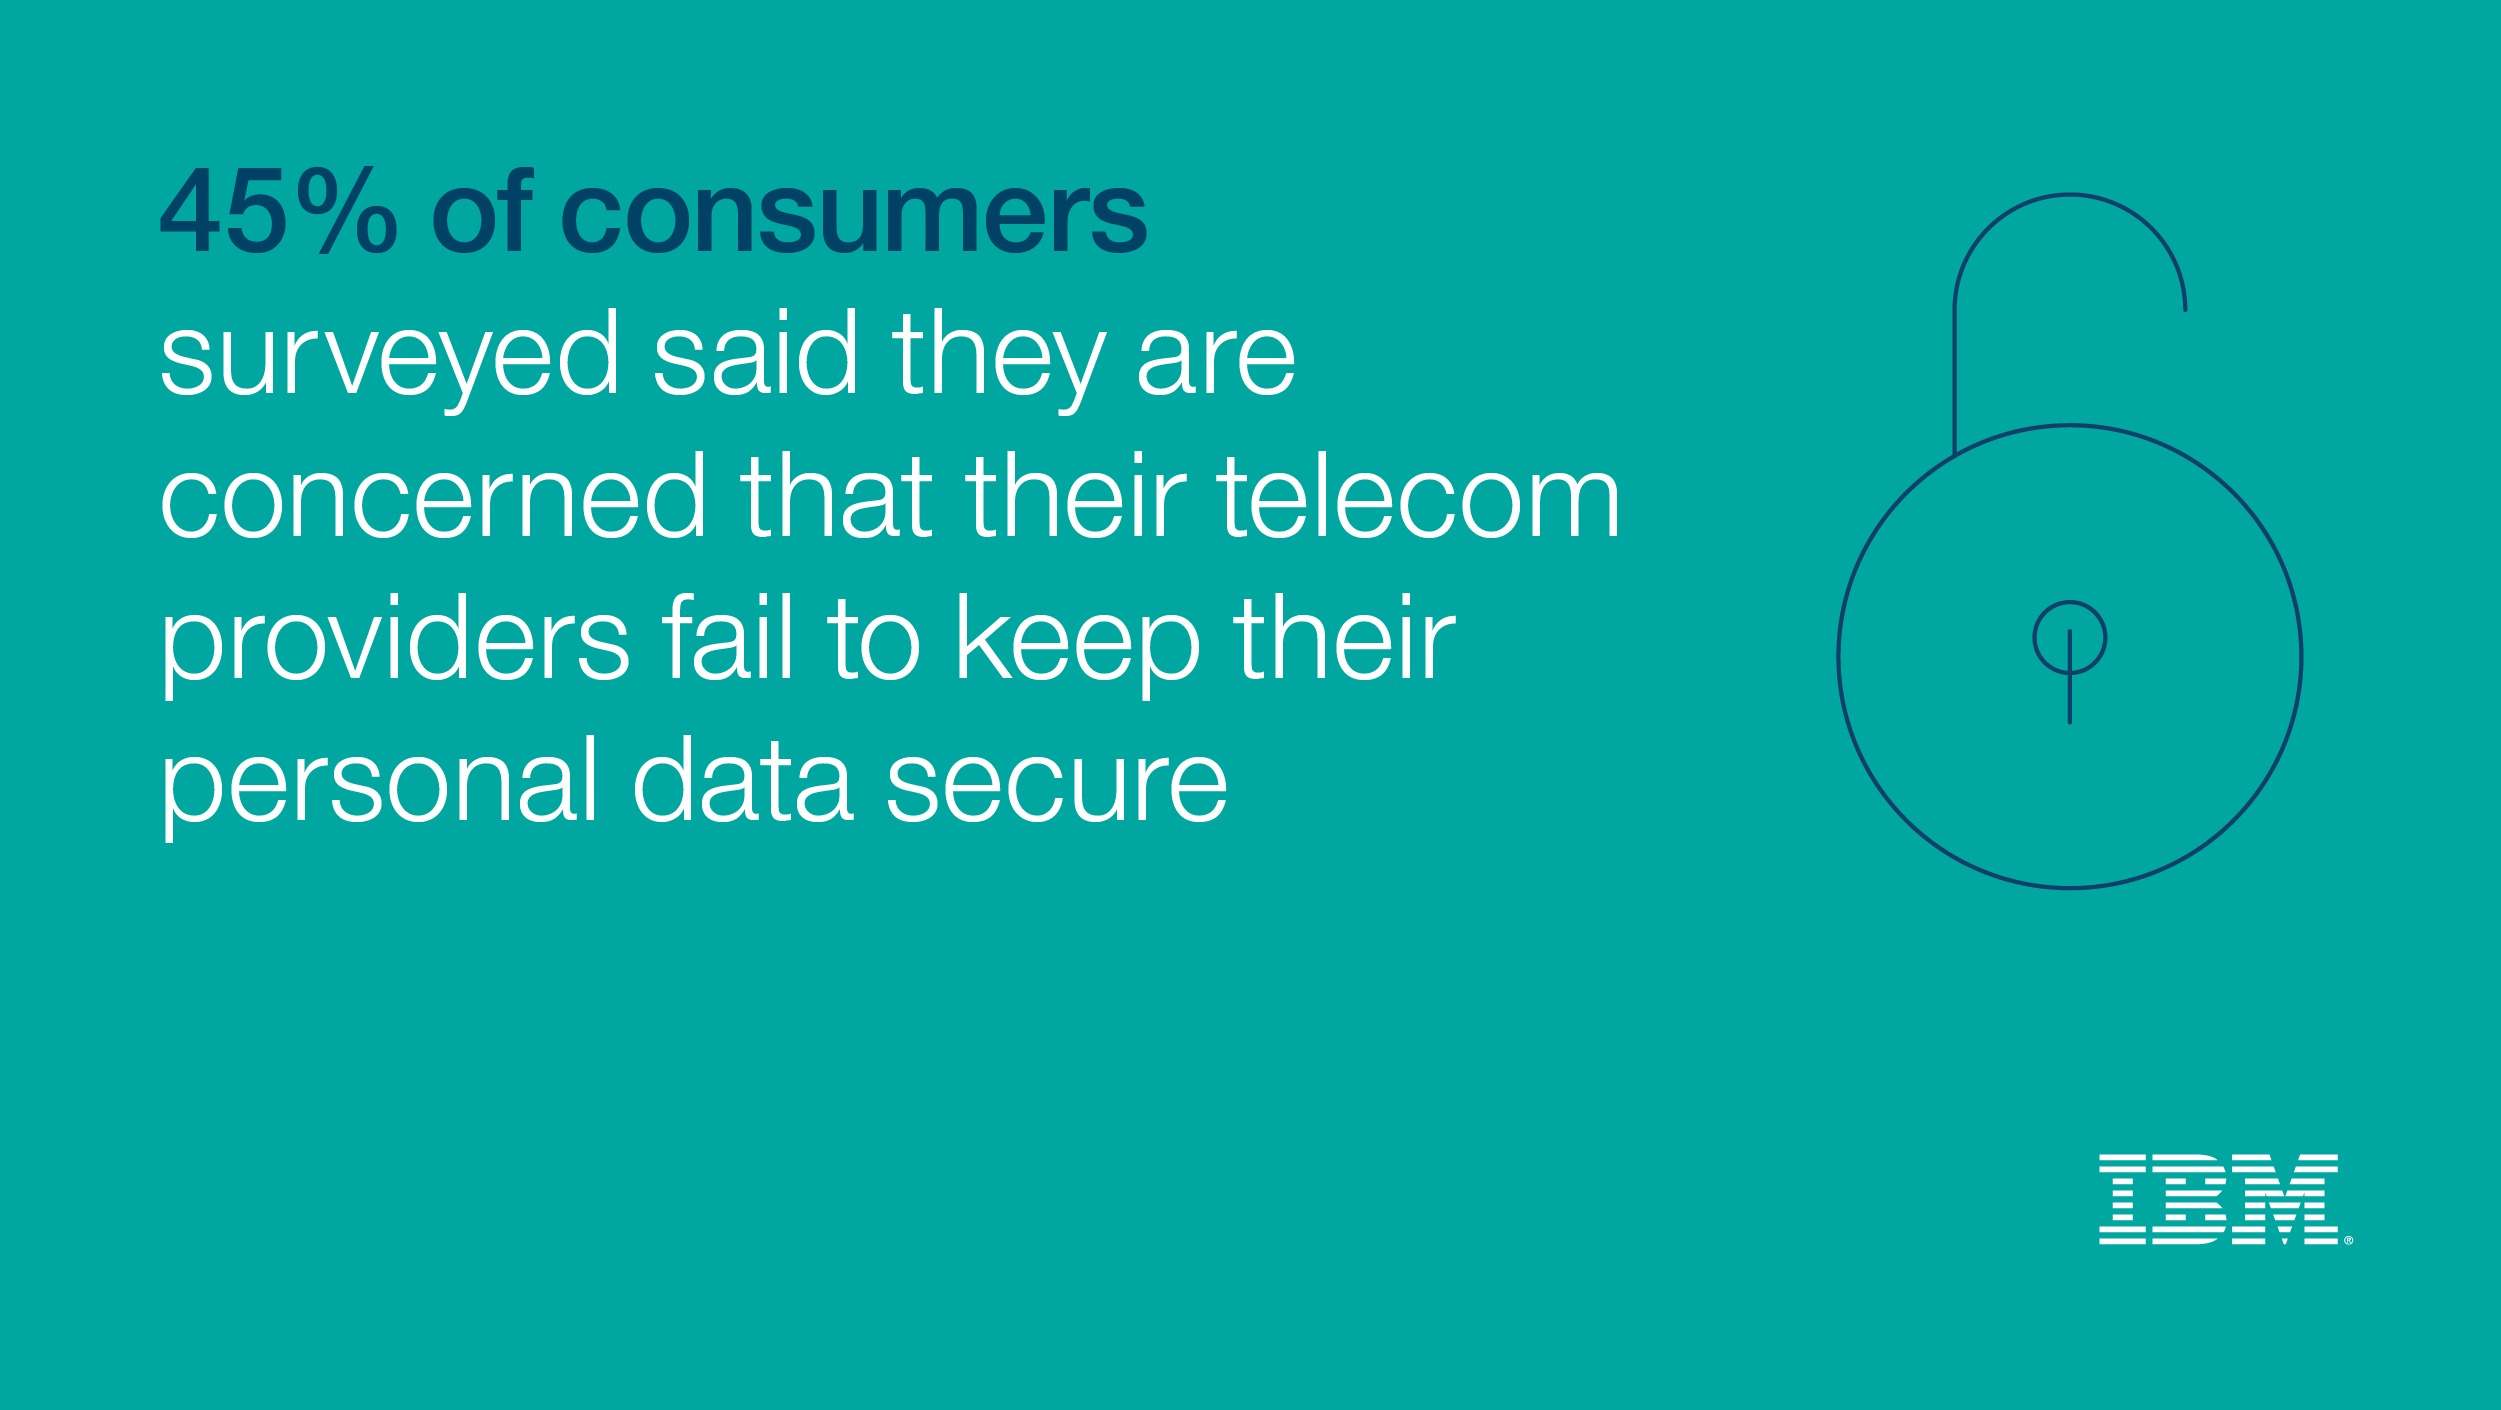 45% of consumers surveyed said they are concerned that their telecom providers fail to keep their personal data secure